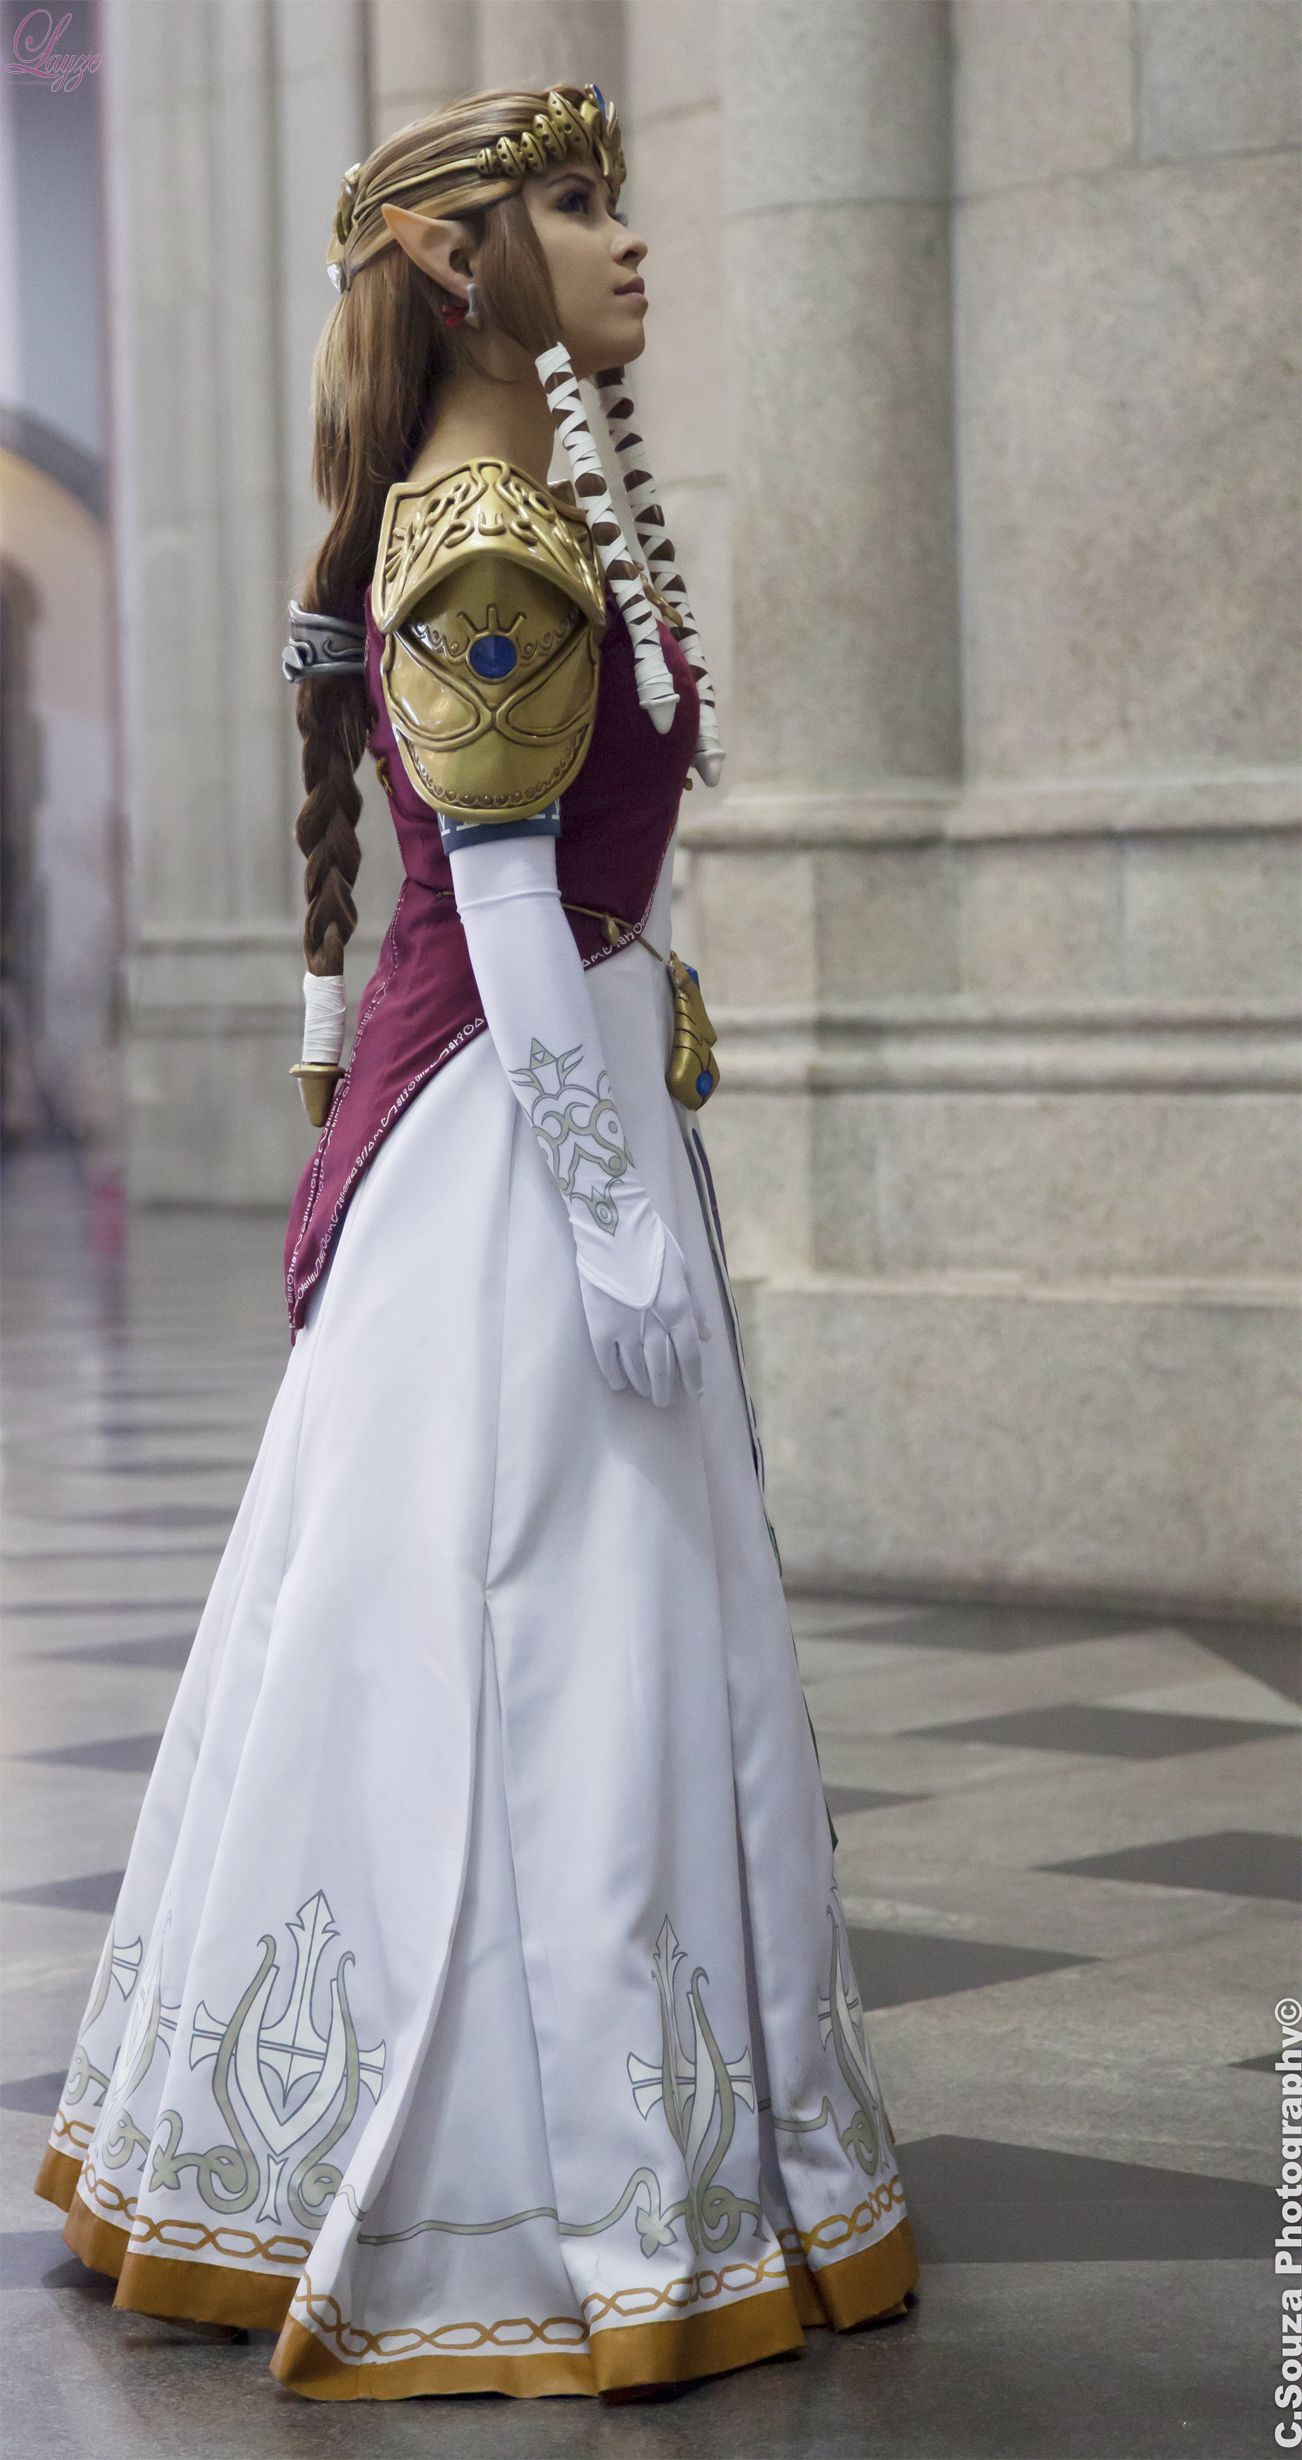 Princess Zelda From Twilight Princess Cosplay By Laahmichelle The